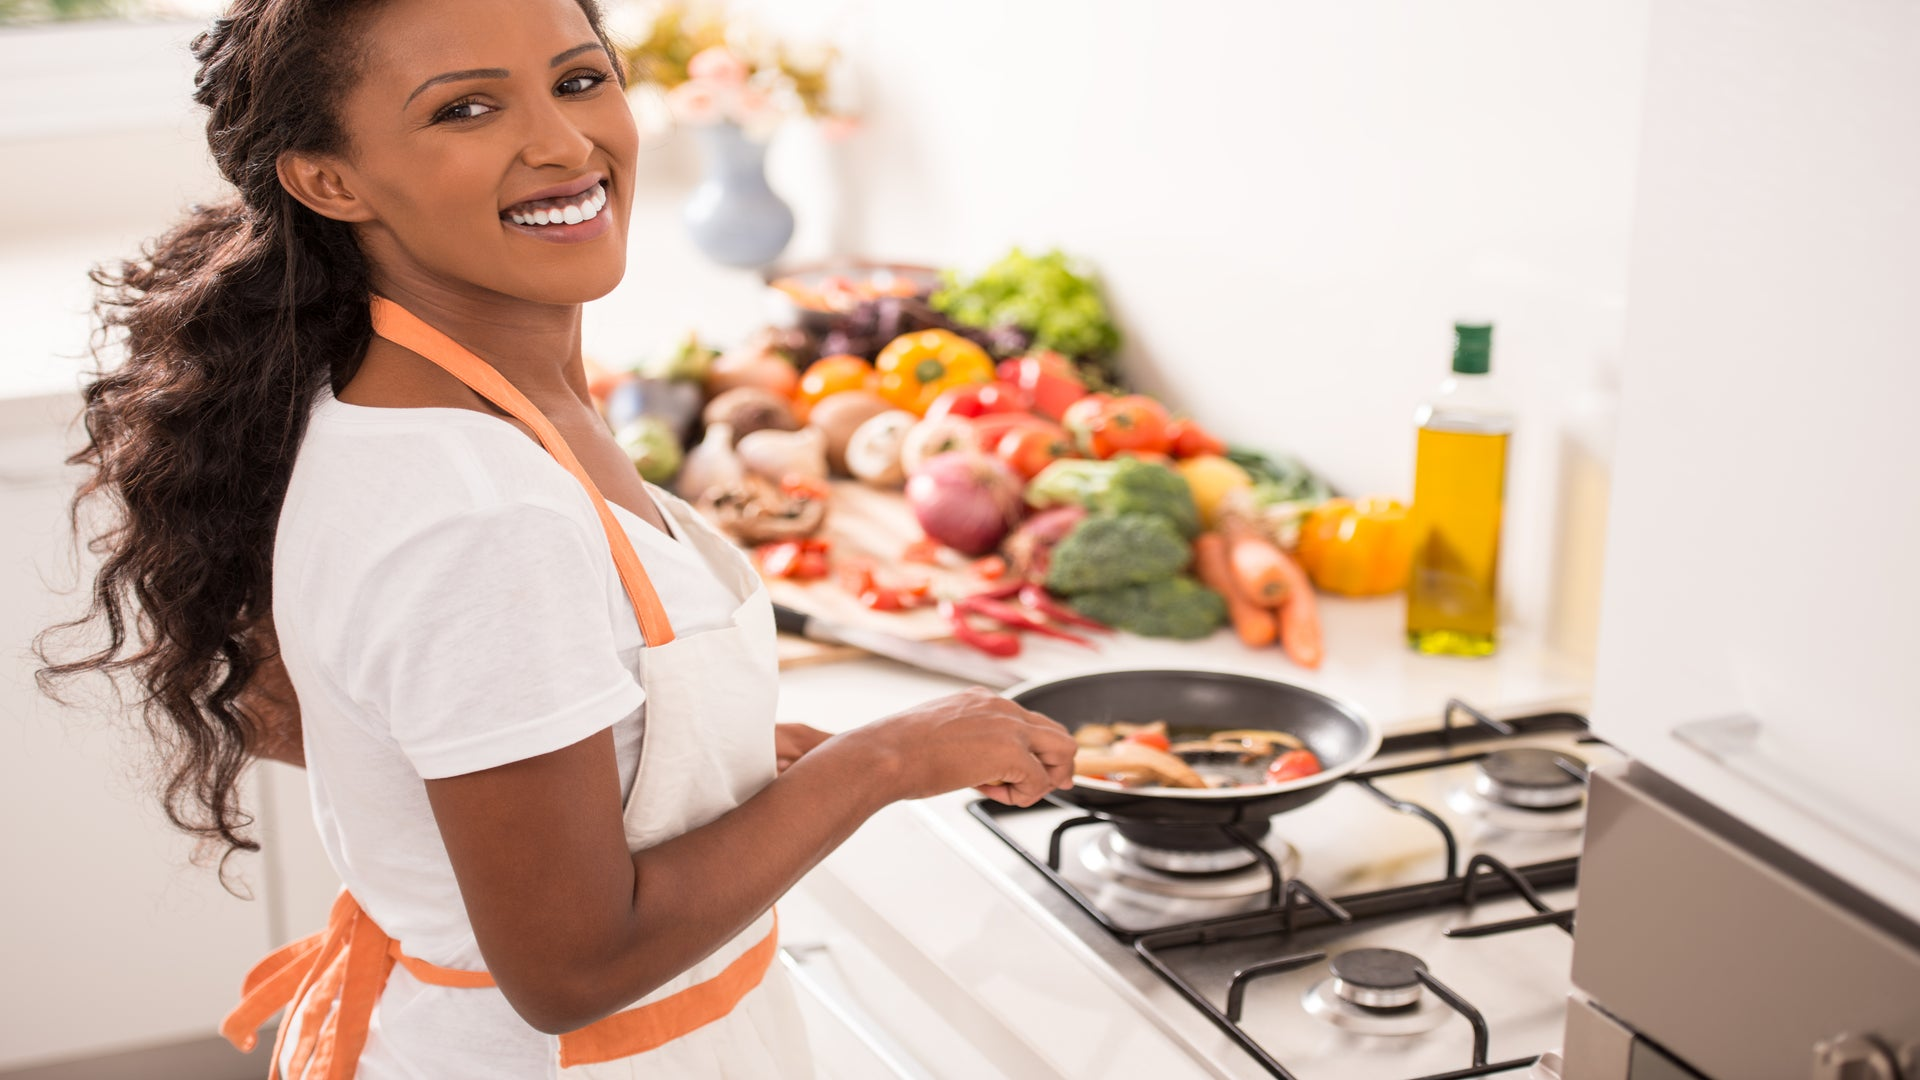 20 Handy Kitchen Items Under $75 Every Woman Should Have In Her Kitchen